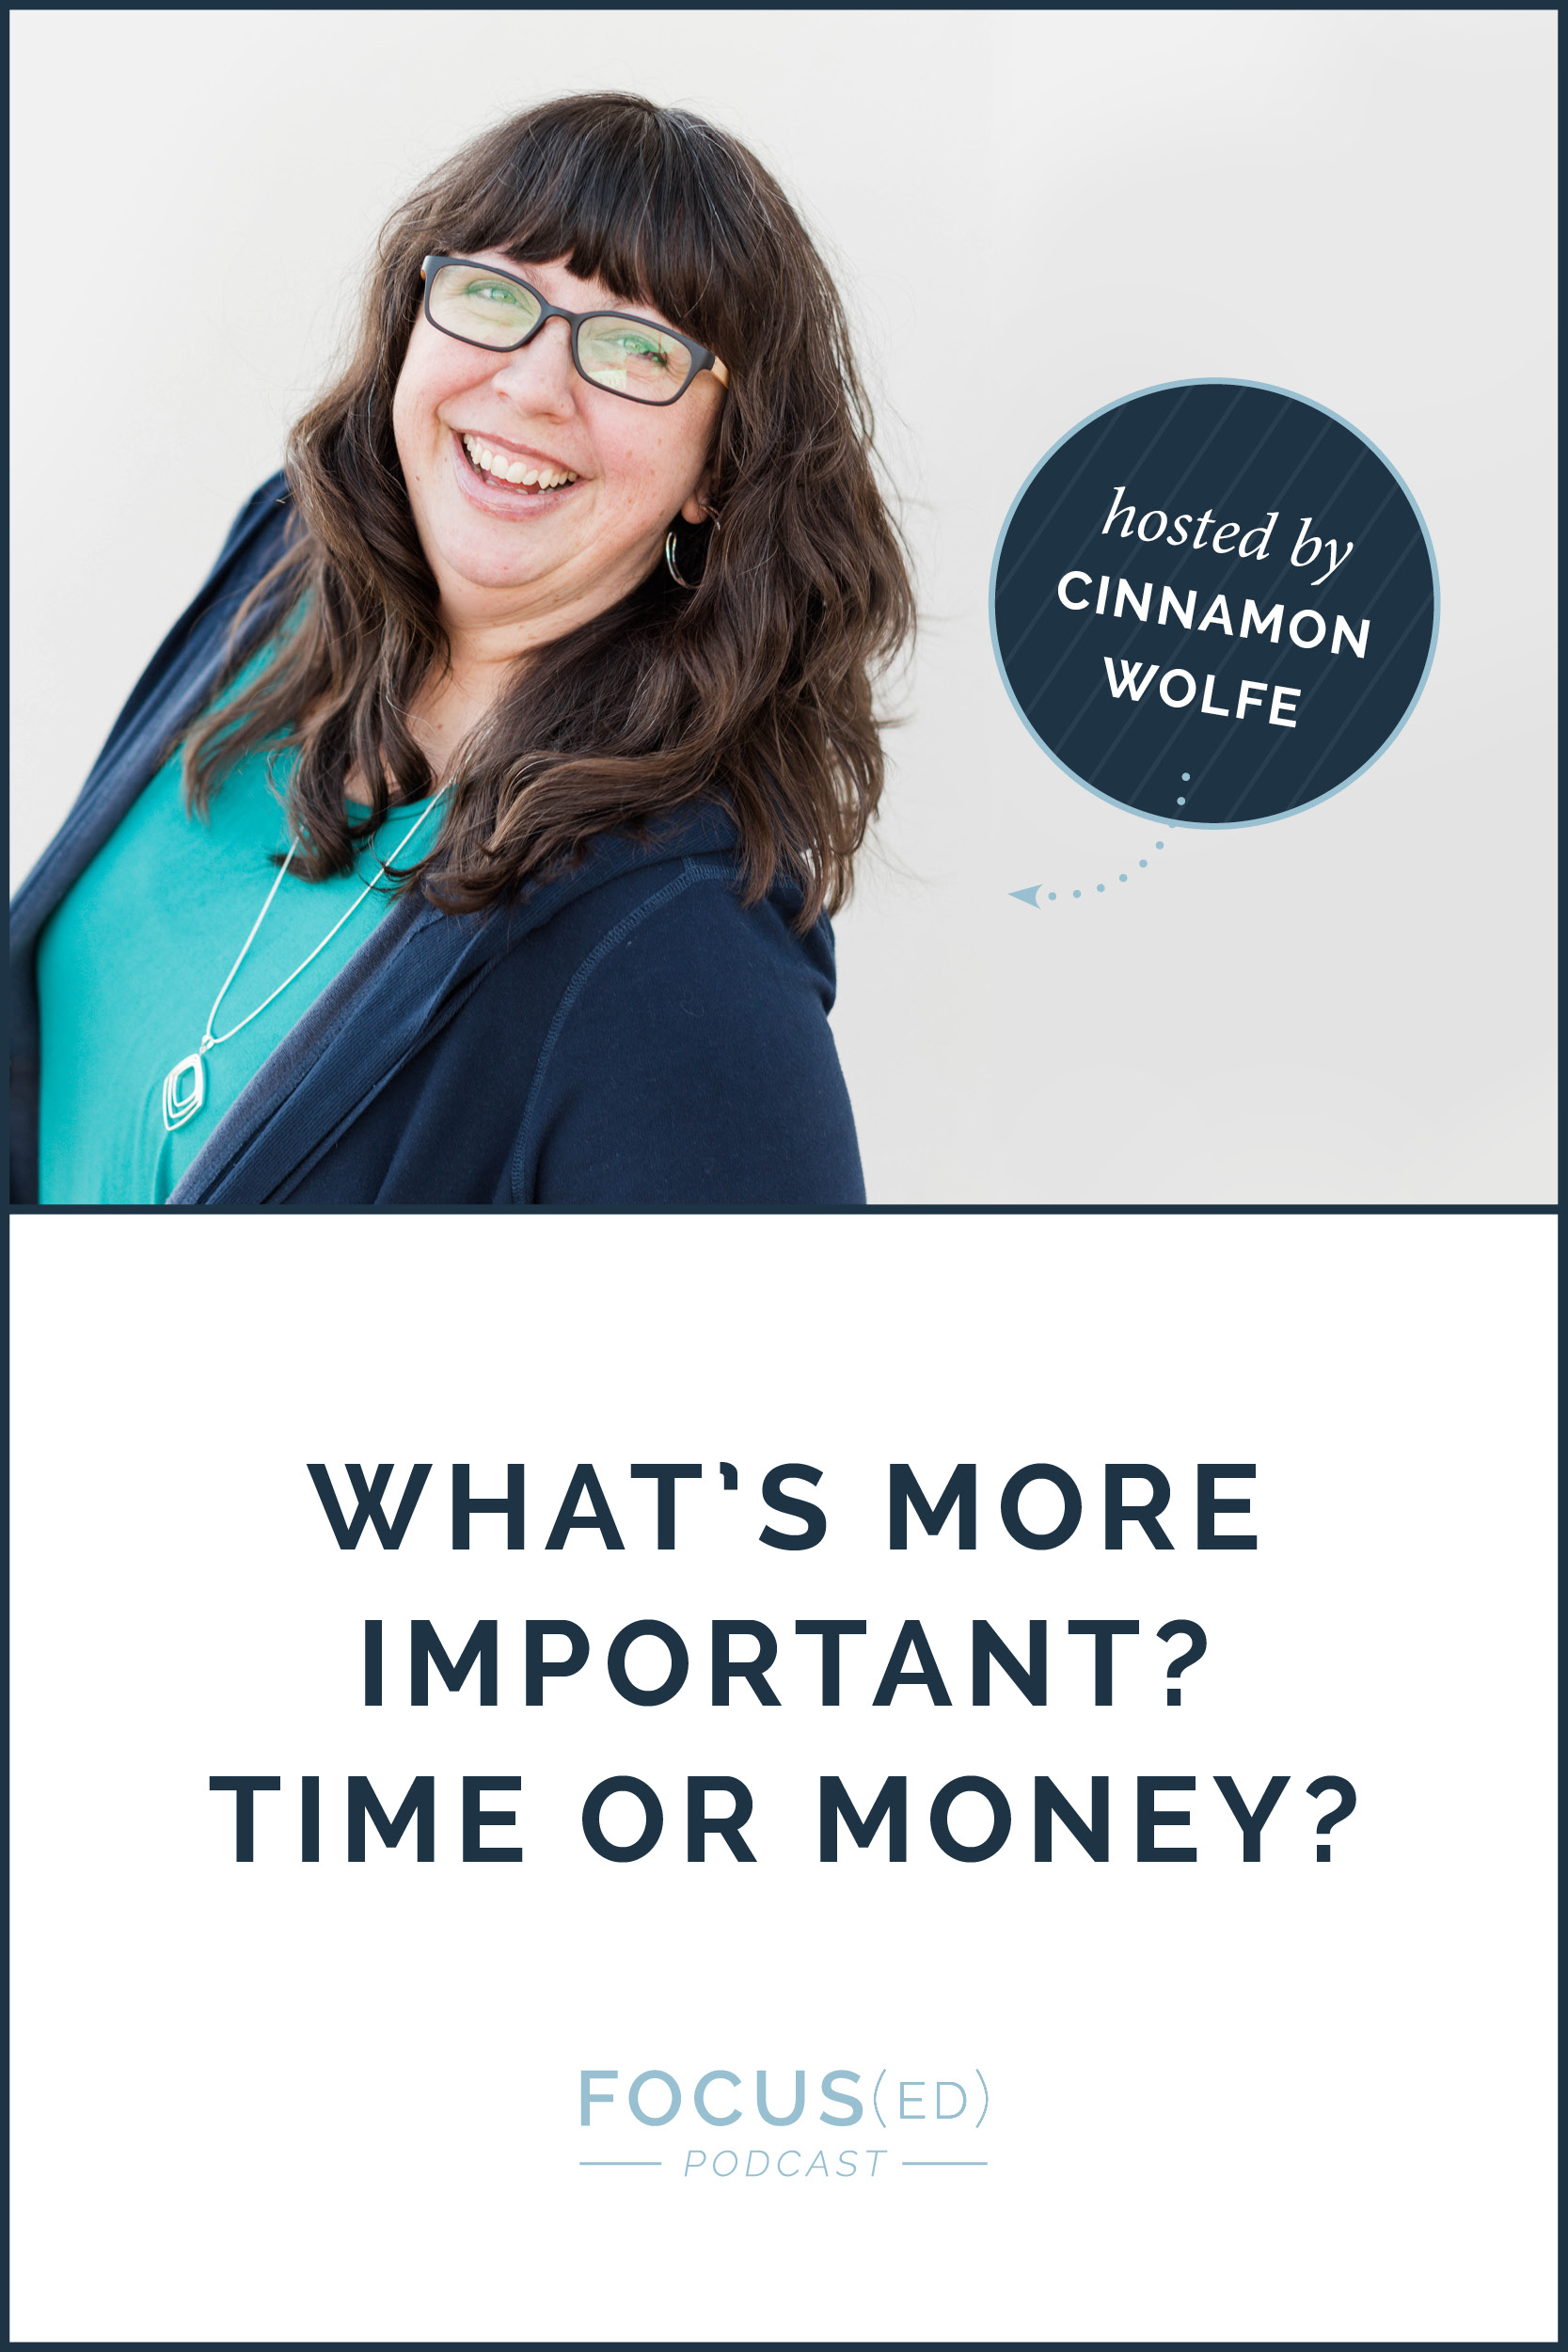 Focused blog - Time or Money.jpg